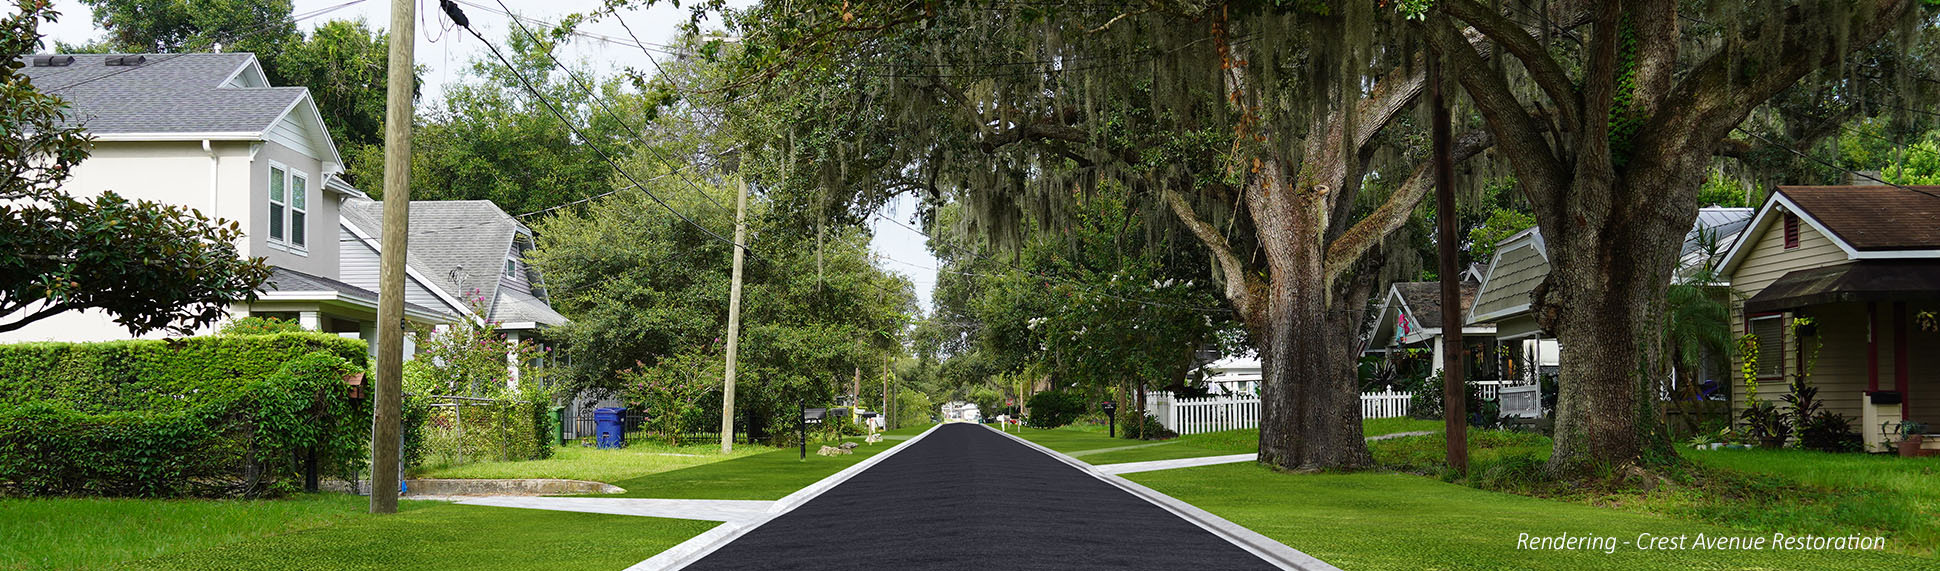 This is a photoshopped imaged to show conceptually what Crest Avenue will look like after construction. It will be repaved with asphalt and have new gutters and curbs.